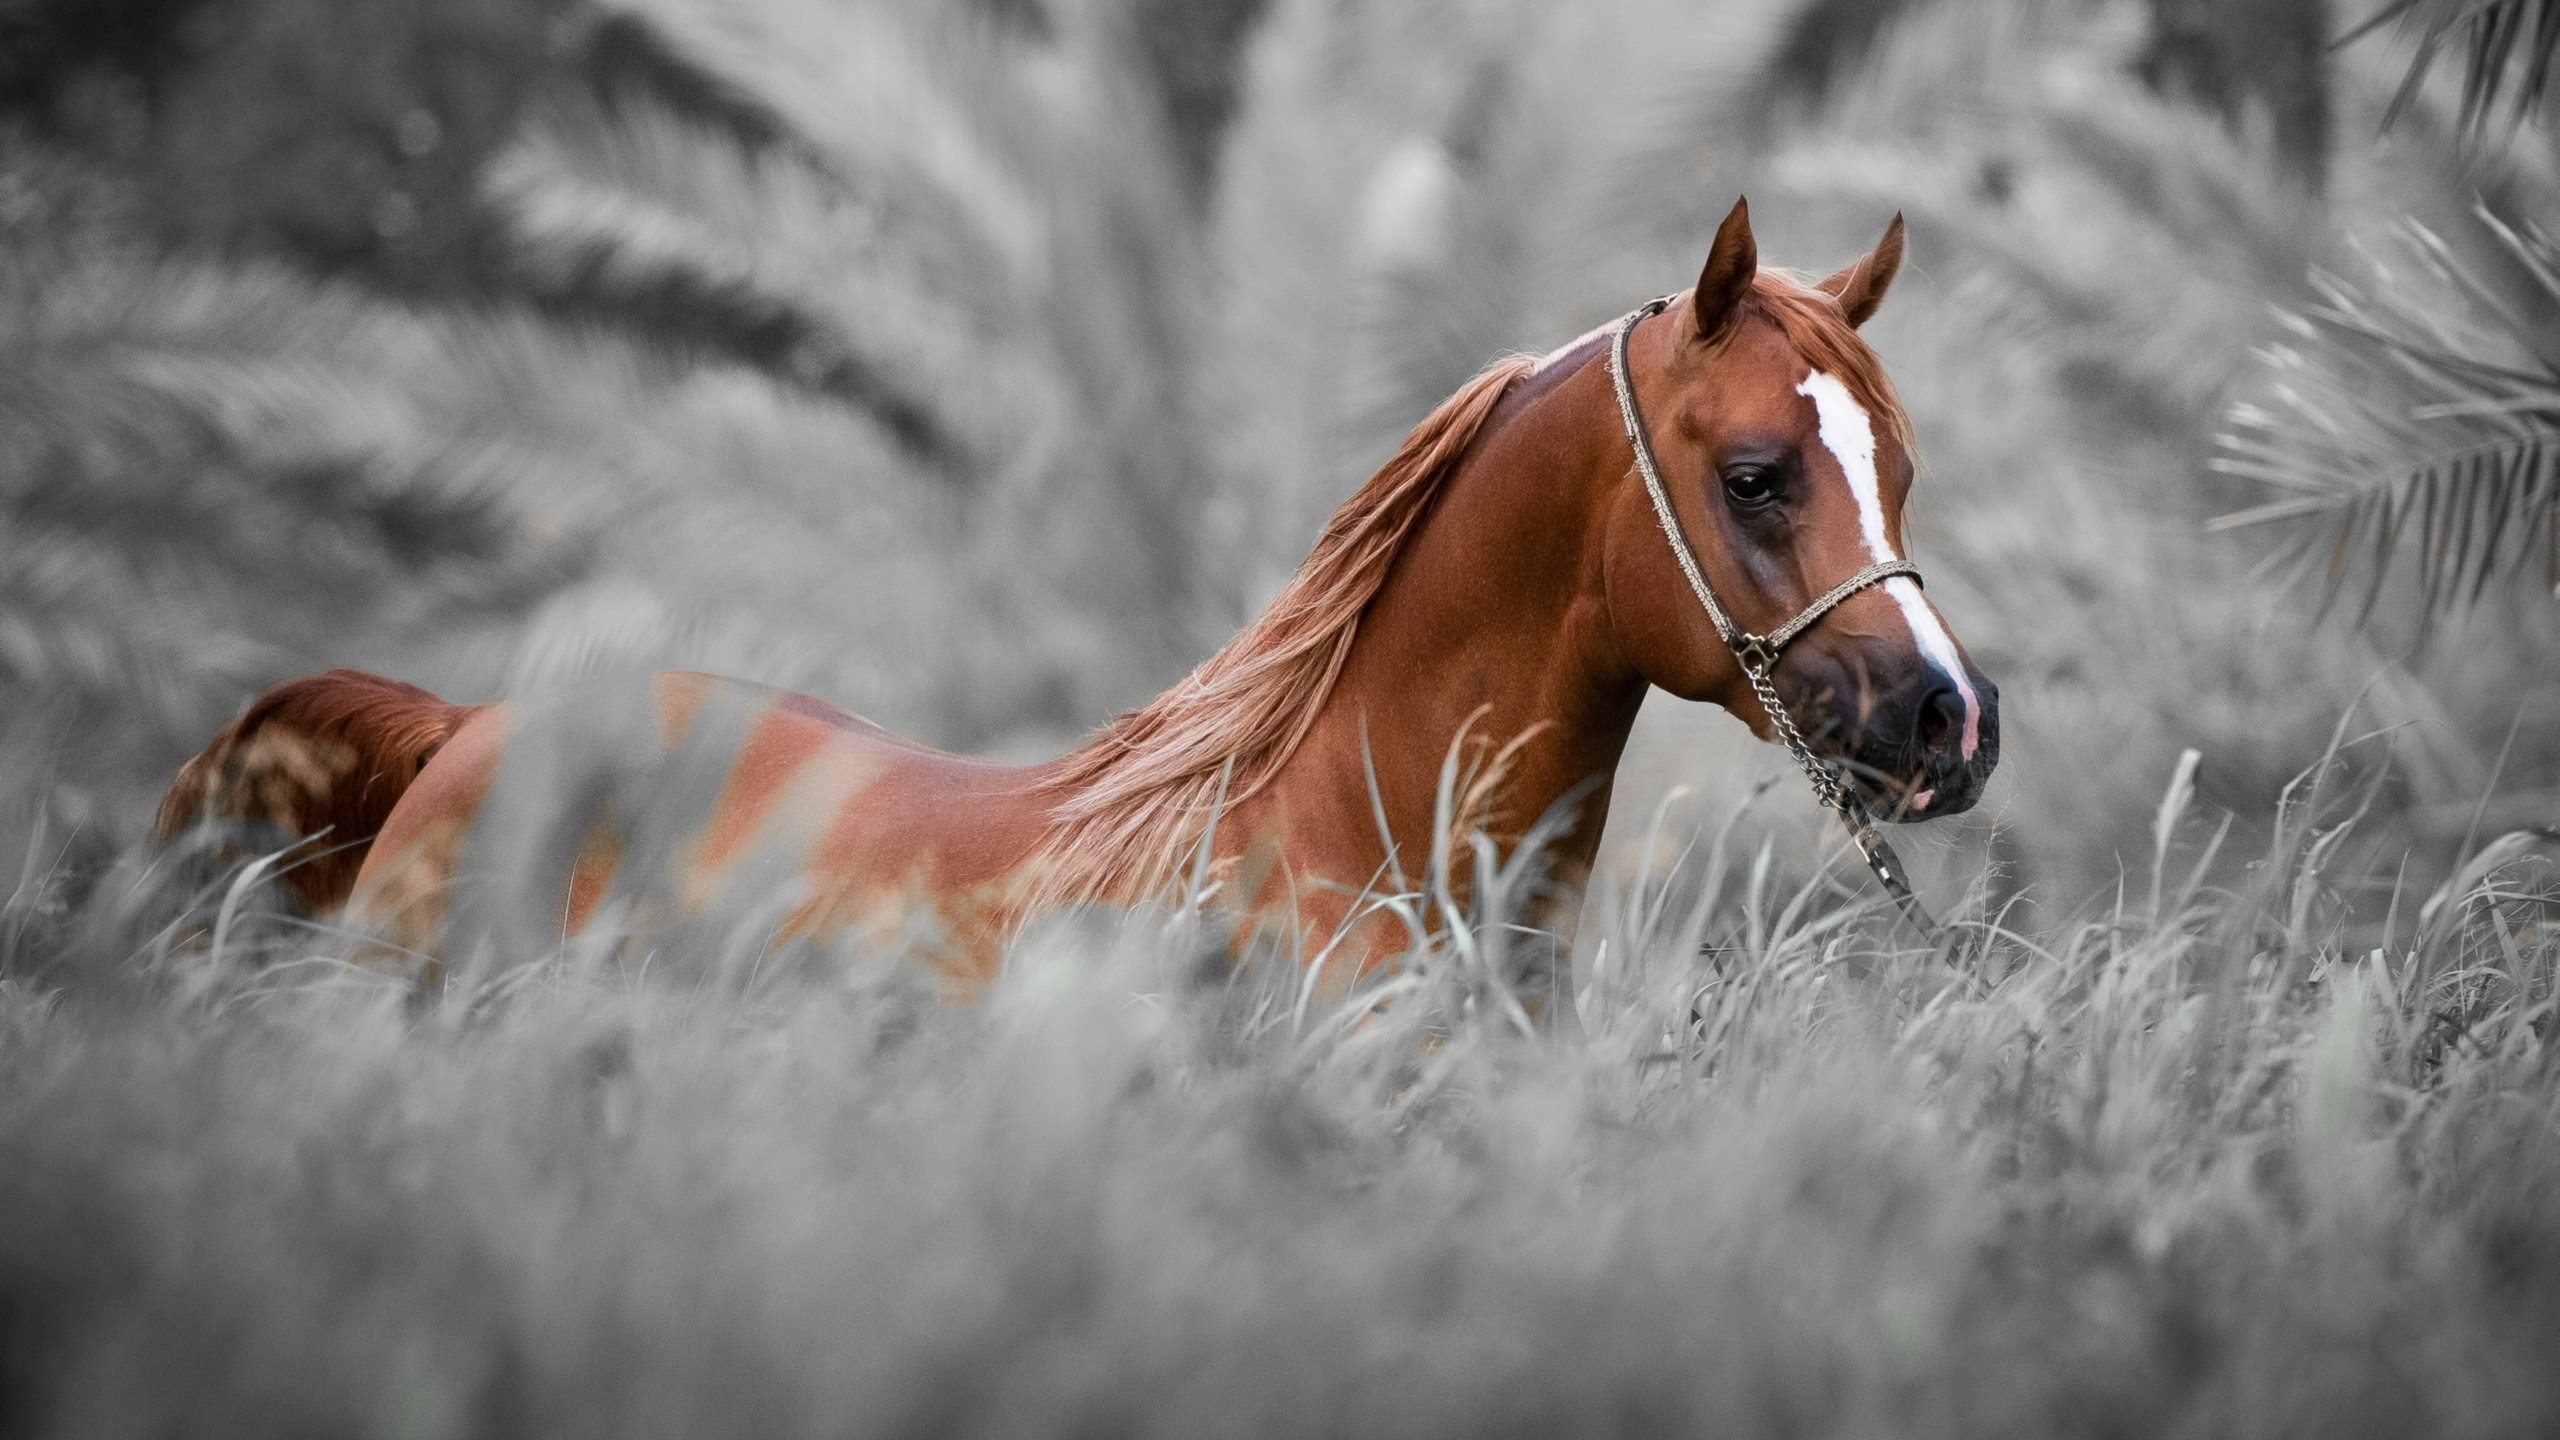 Horse Wallpapers For Android Horse Wallpaper Hd 2560x1440 Wallpaper Teahub Io